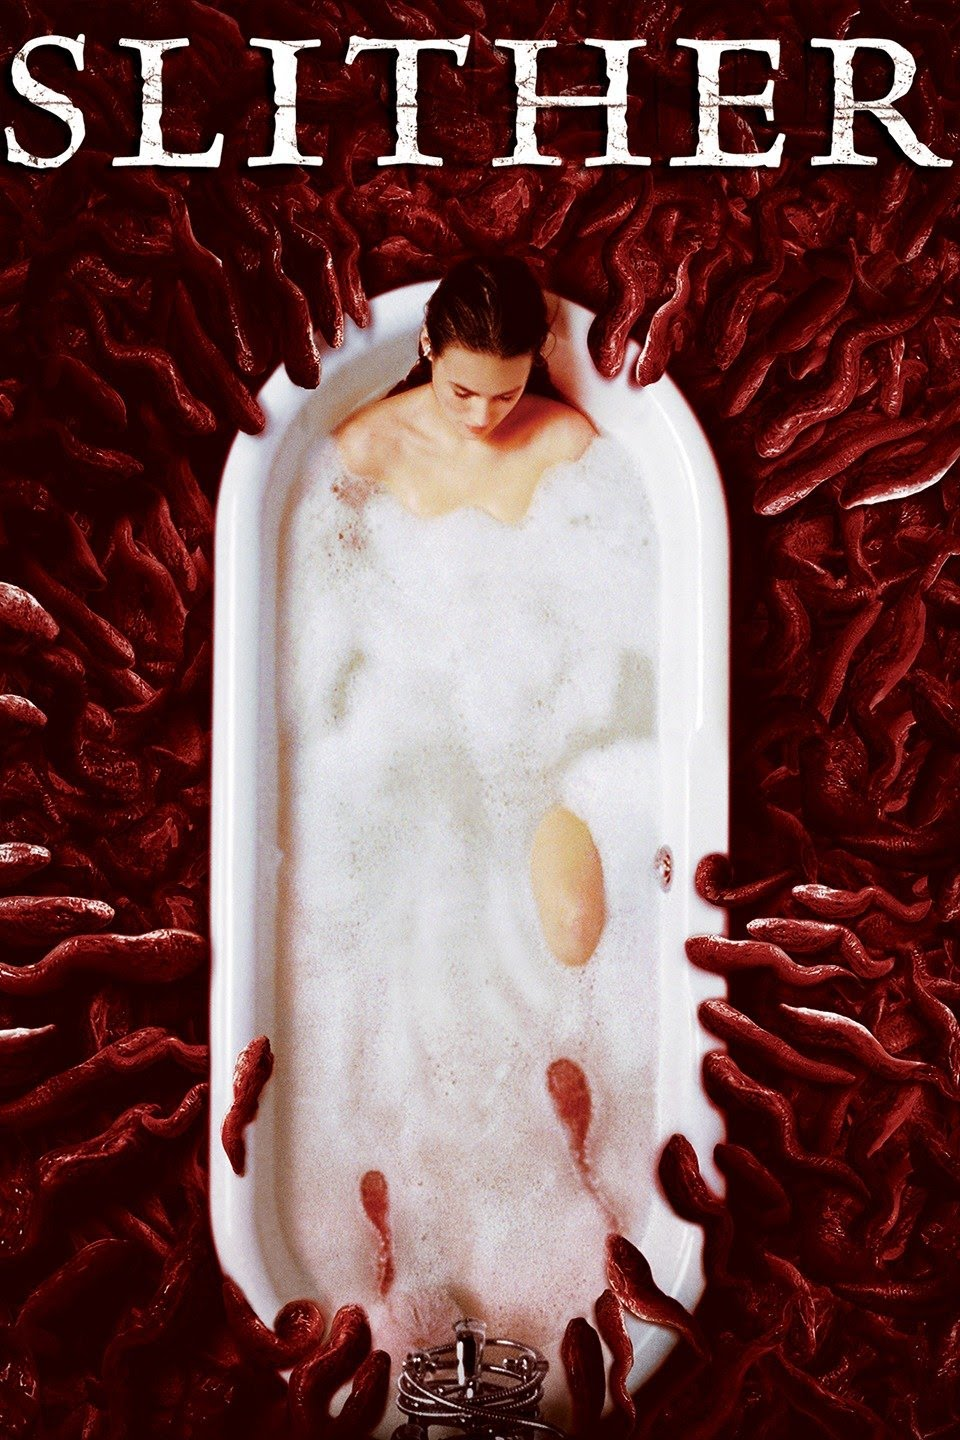 Slither 2006 BluRay x264 1080p [3.08 GB] 720p [888 MB] 480p [364 MB] Hindi-English | G-Drive